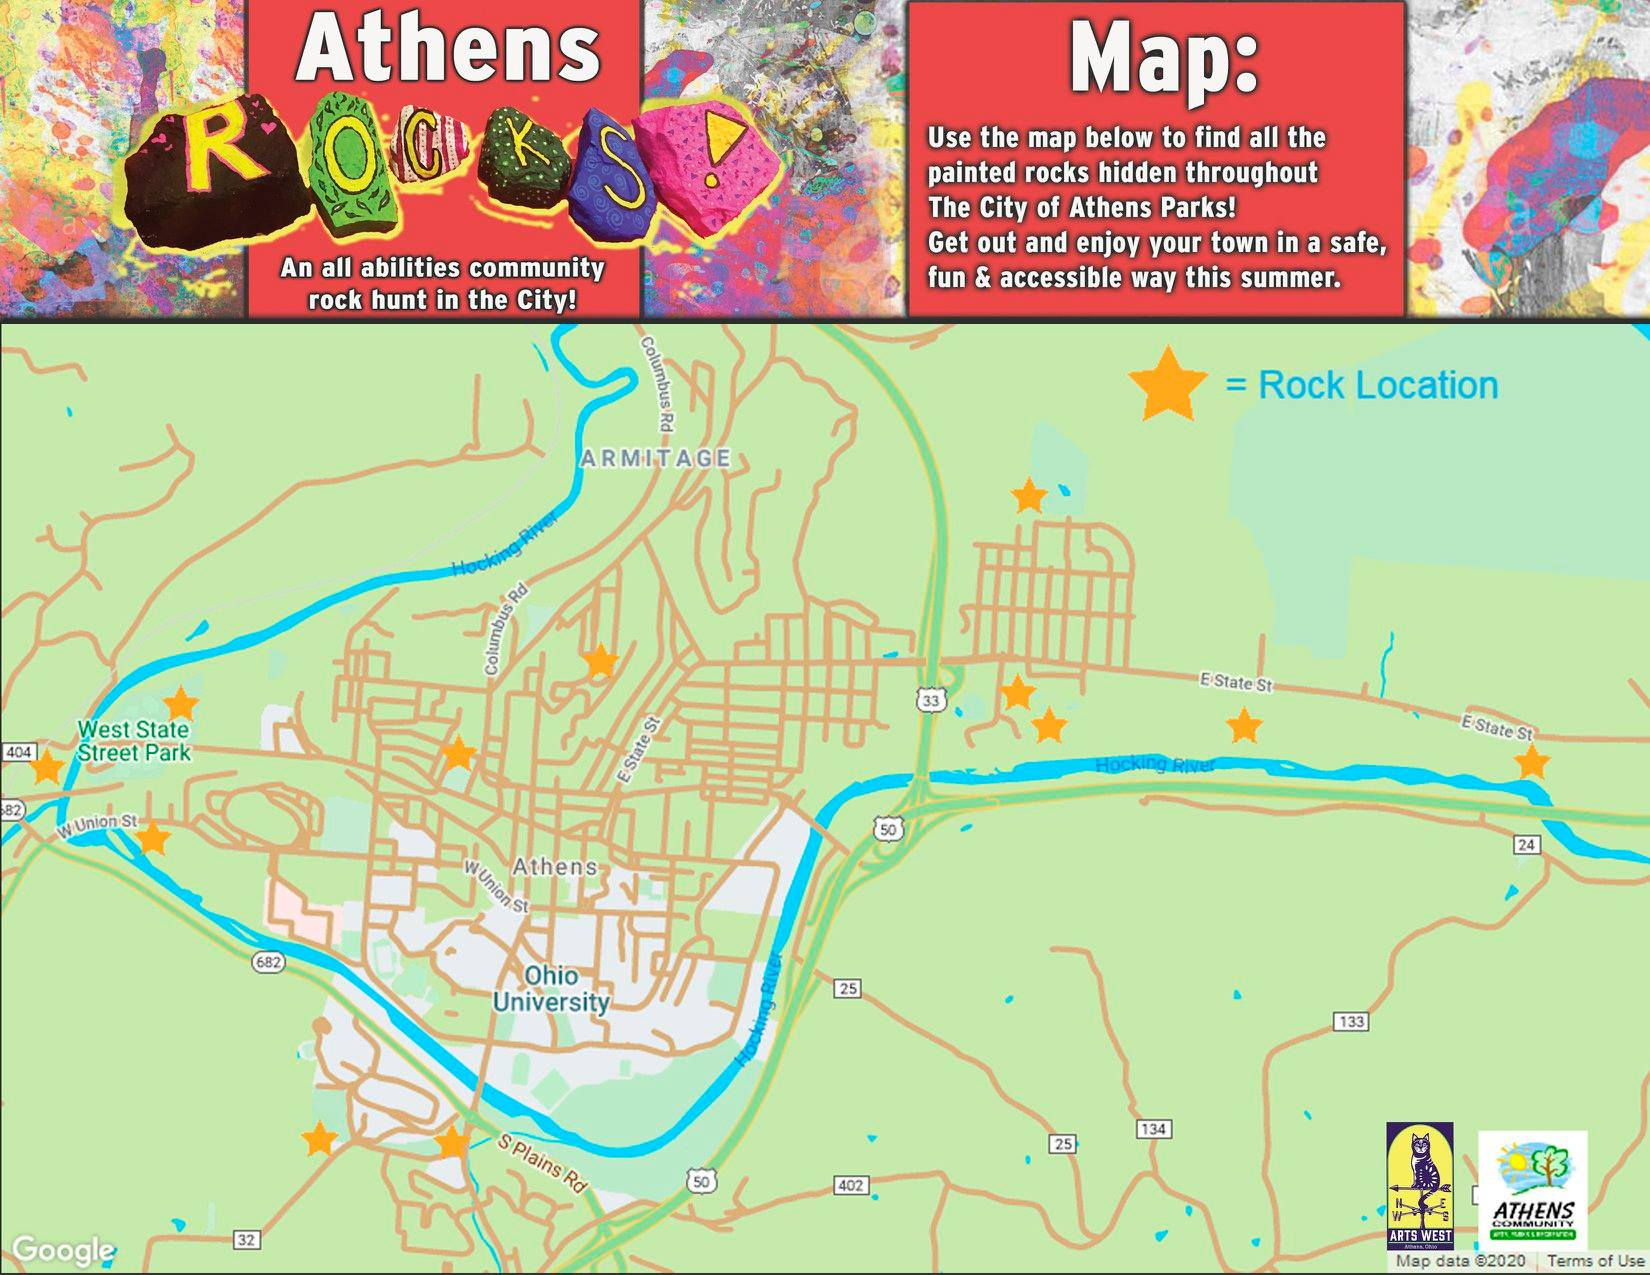 Athens Rocks Map Graphic